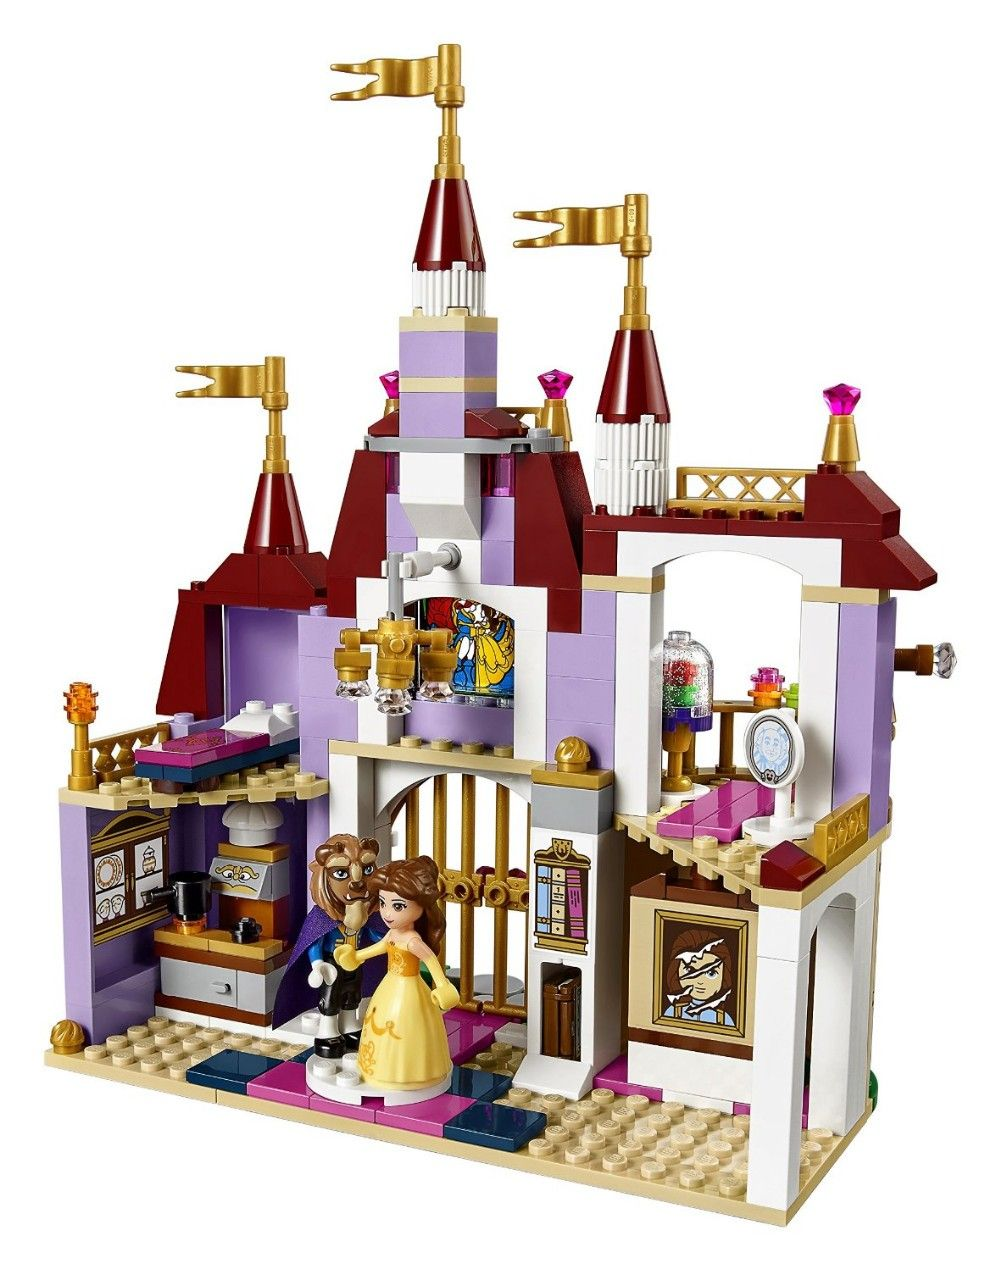 Figures Model Toys Beauty and The Beast Princess Belle/'s Enchanted Castle Kids